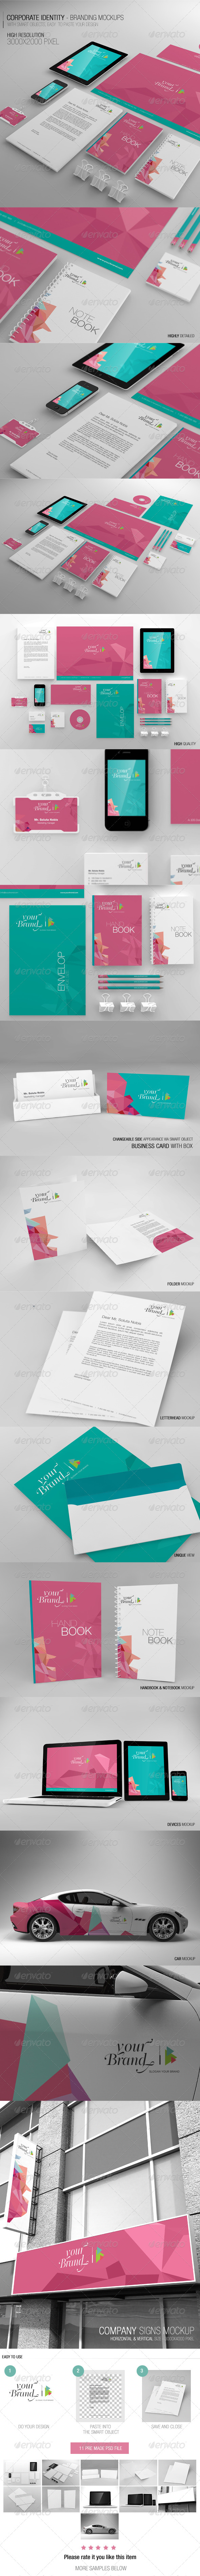 GraphicRiver Corporate Identity Branding Mockups 6944354